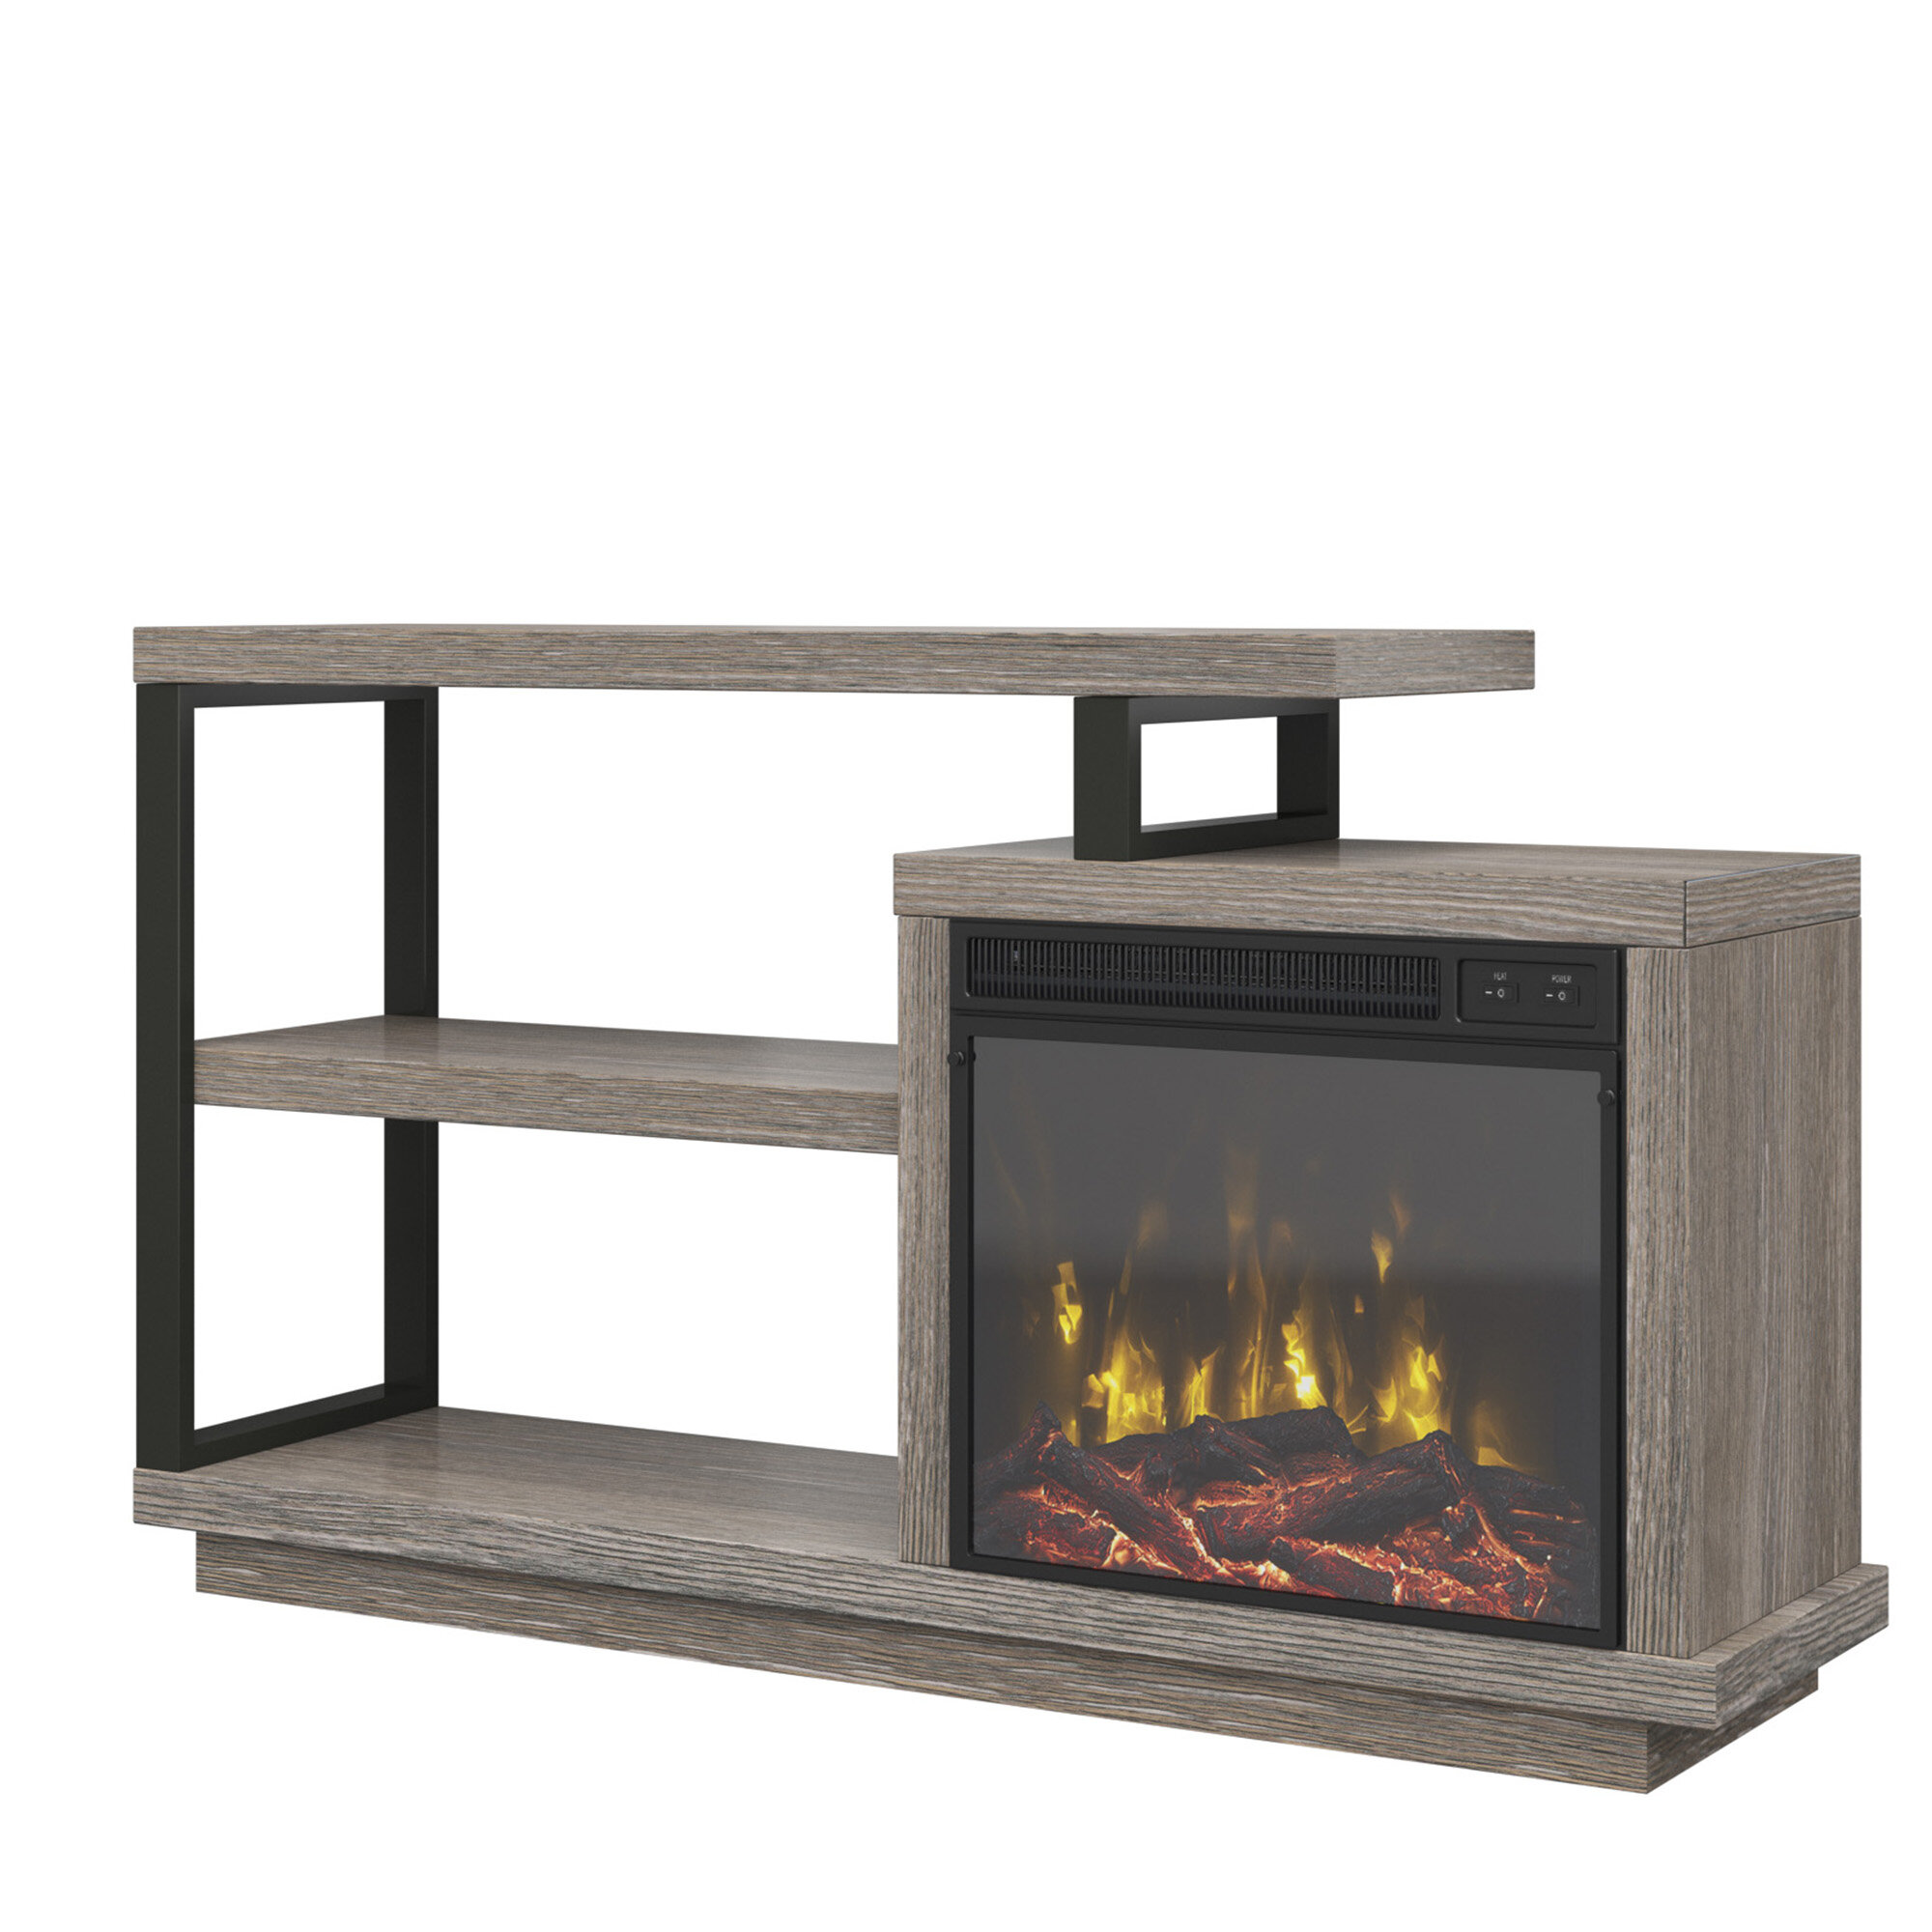 Louann Tv Stand For Tvs Up To 55 With Fireplace Reviews Allmodern